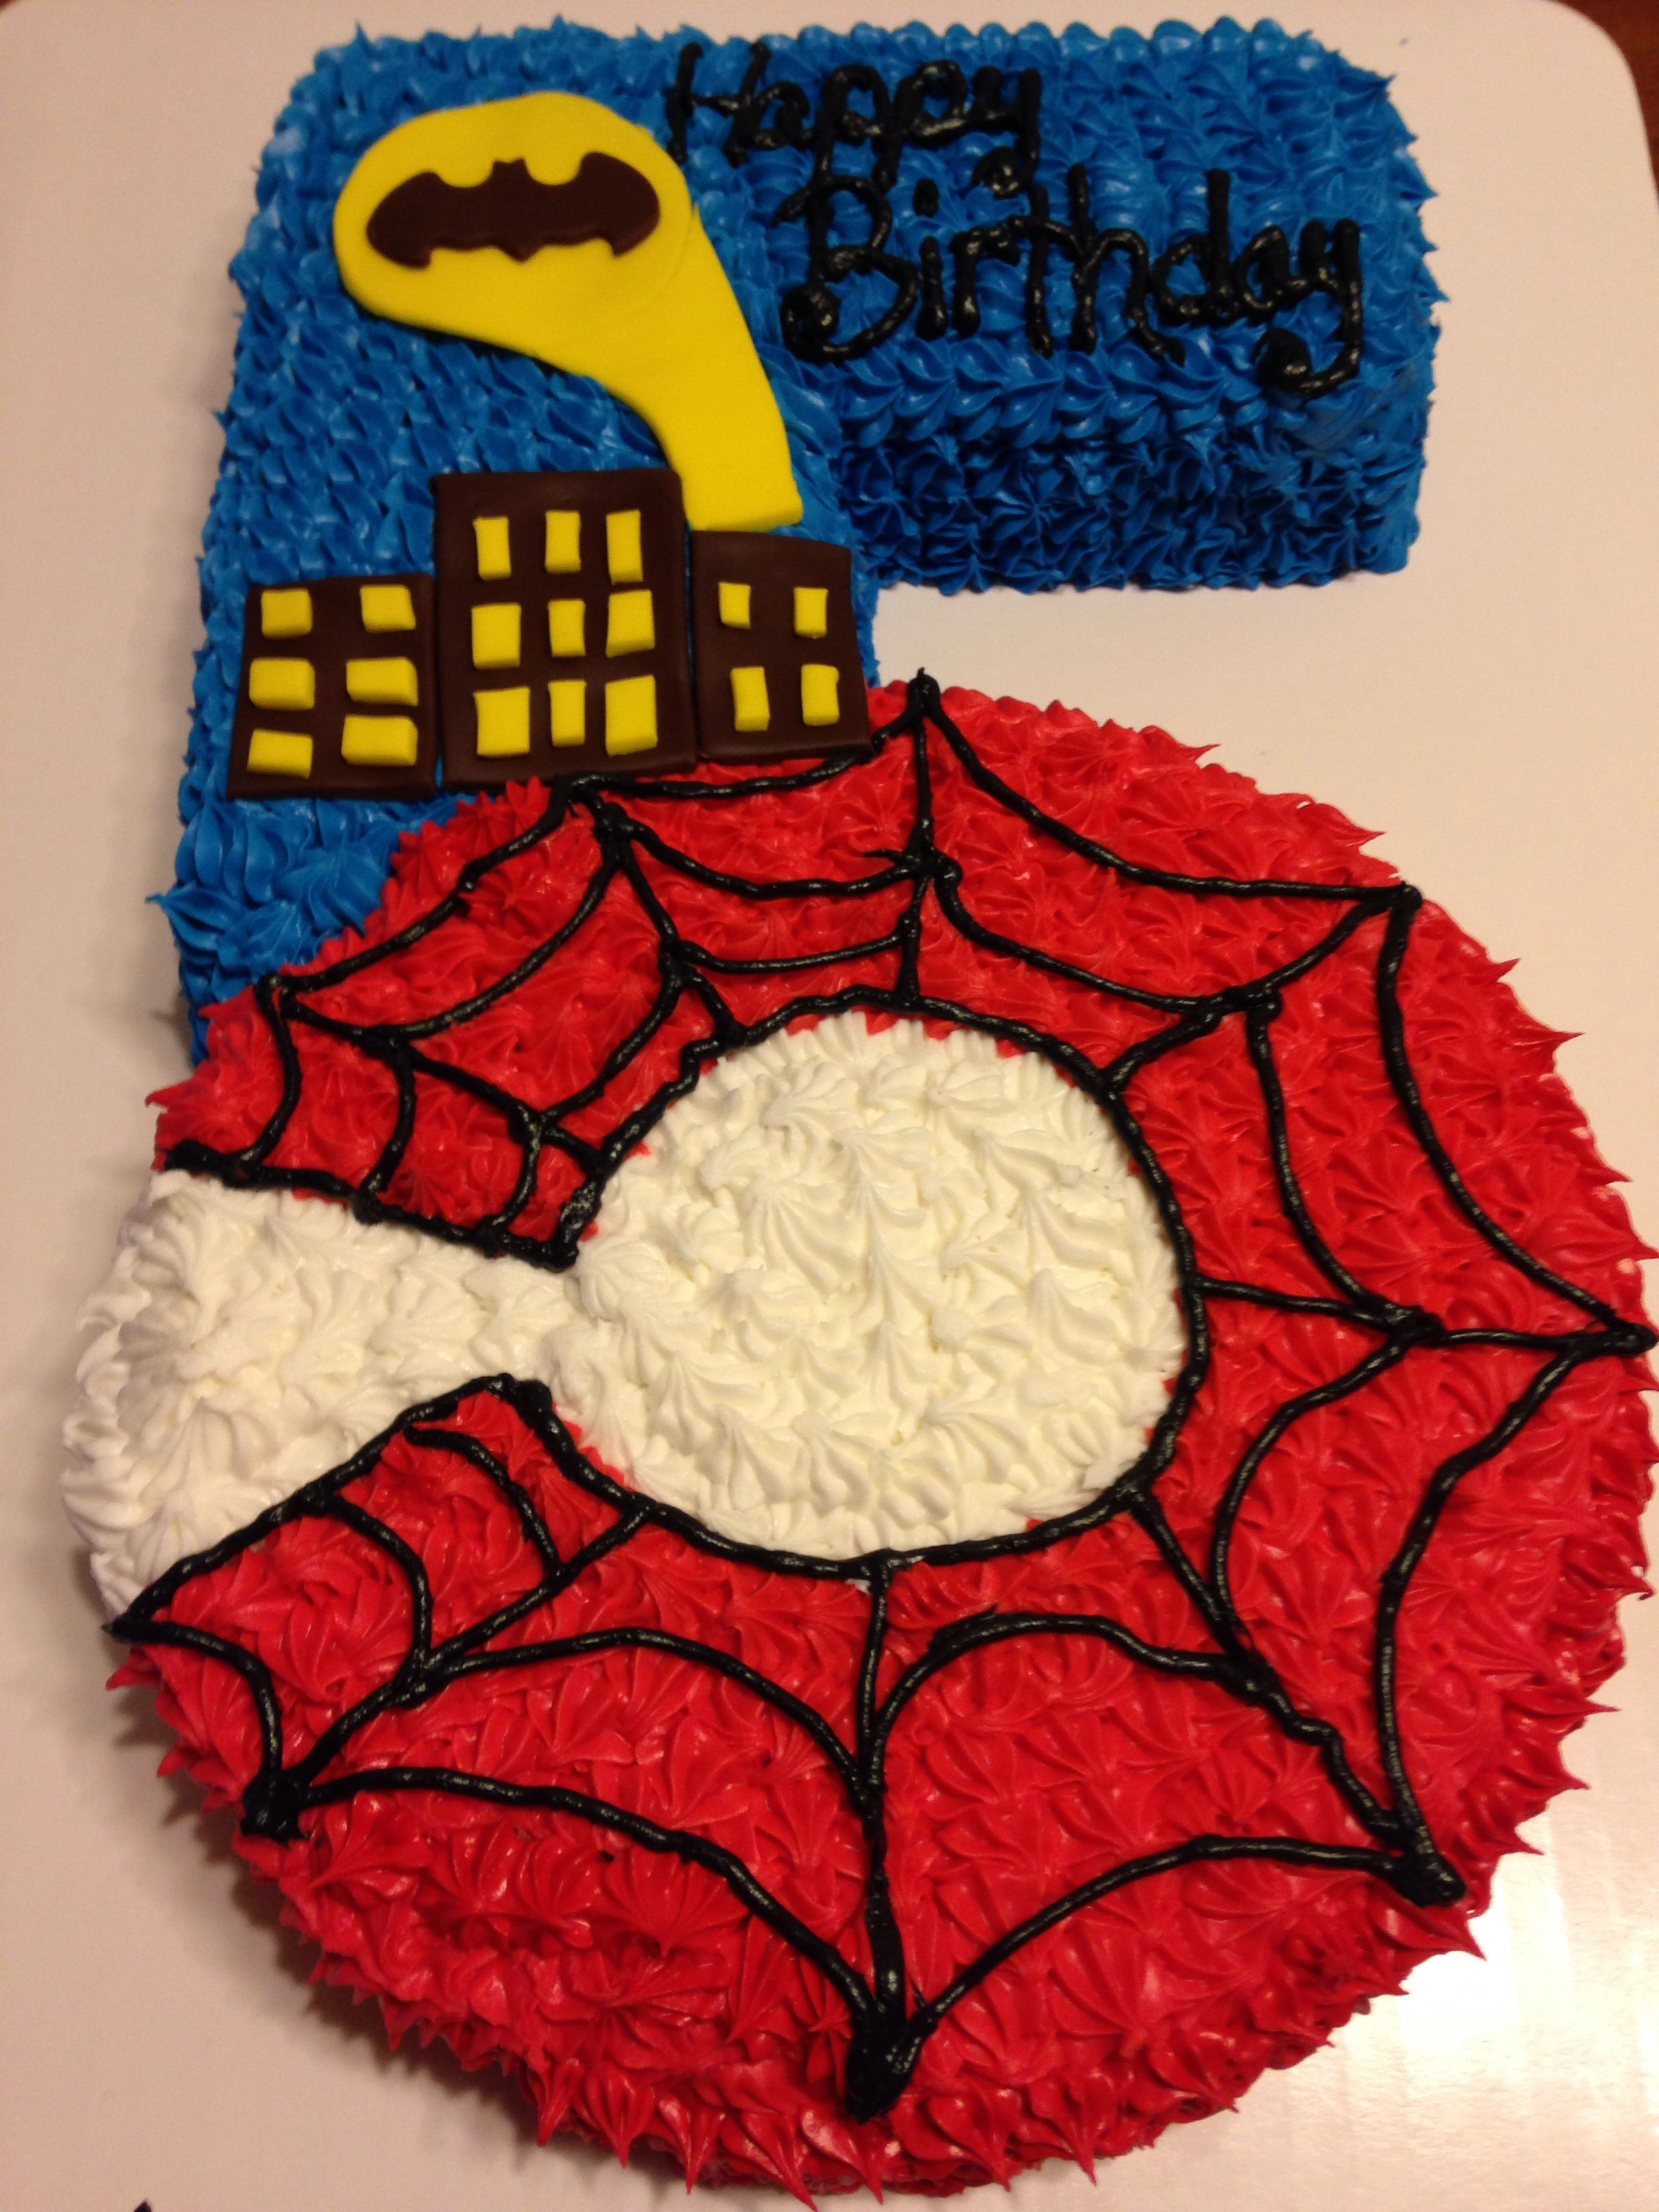 Number 5 Shaped Cake In Batmanspider Man Theme Our Custom Cakes